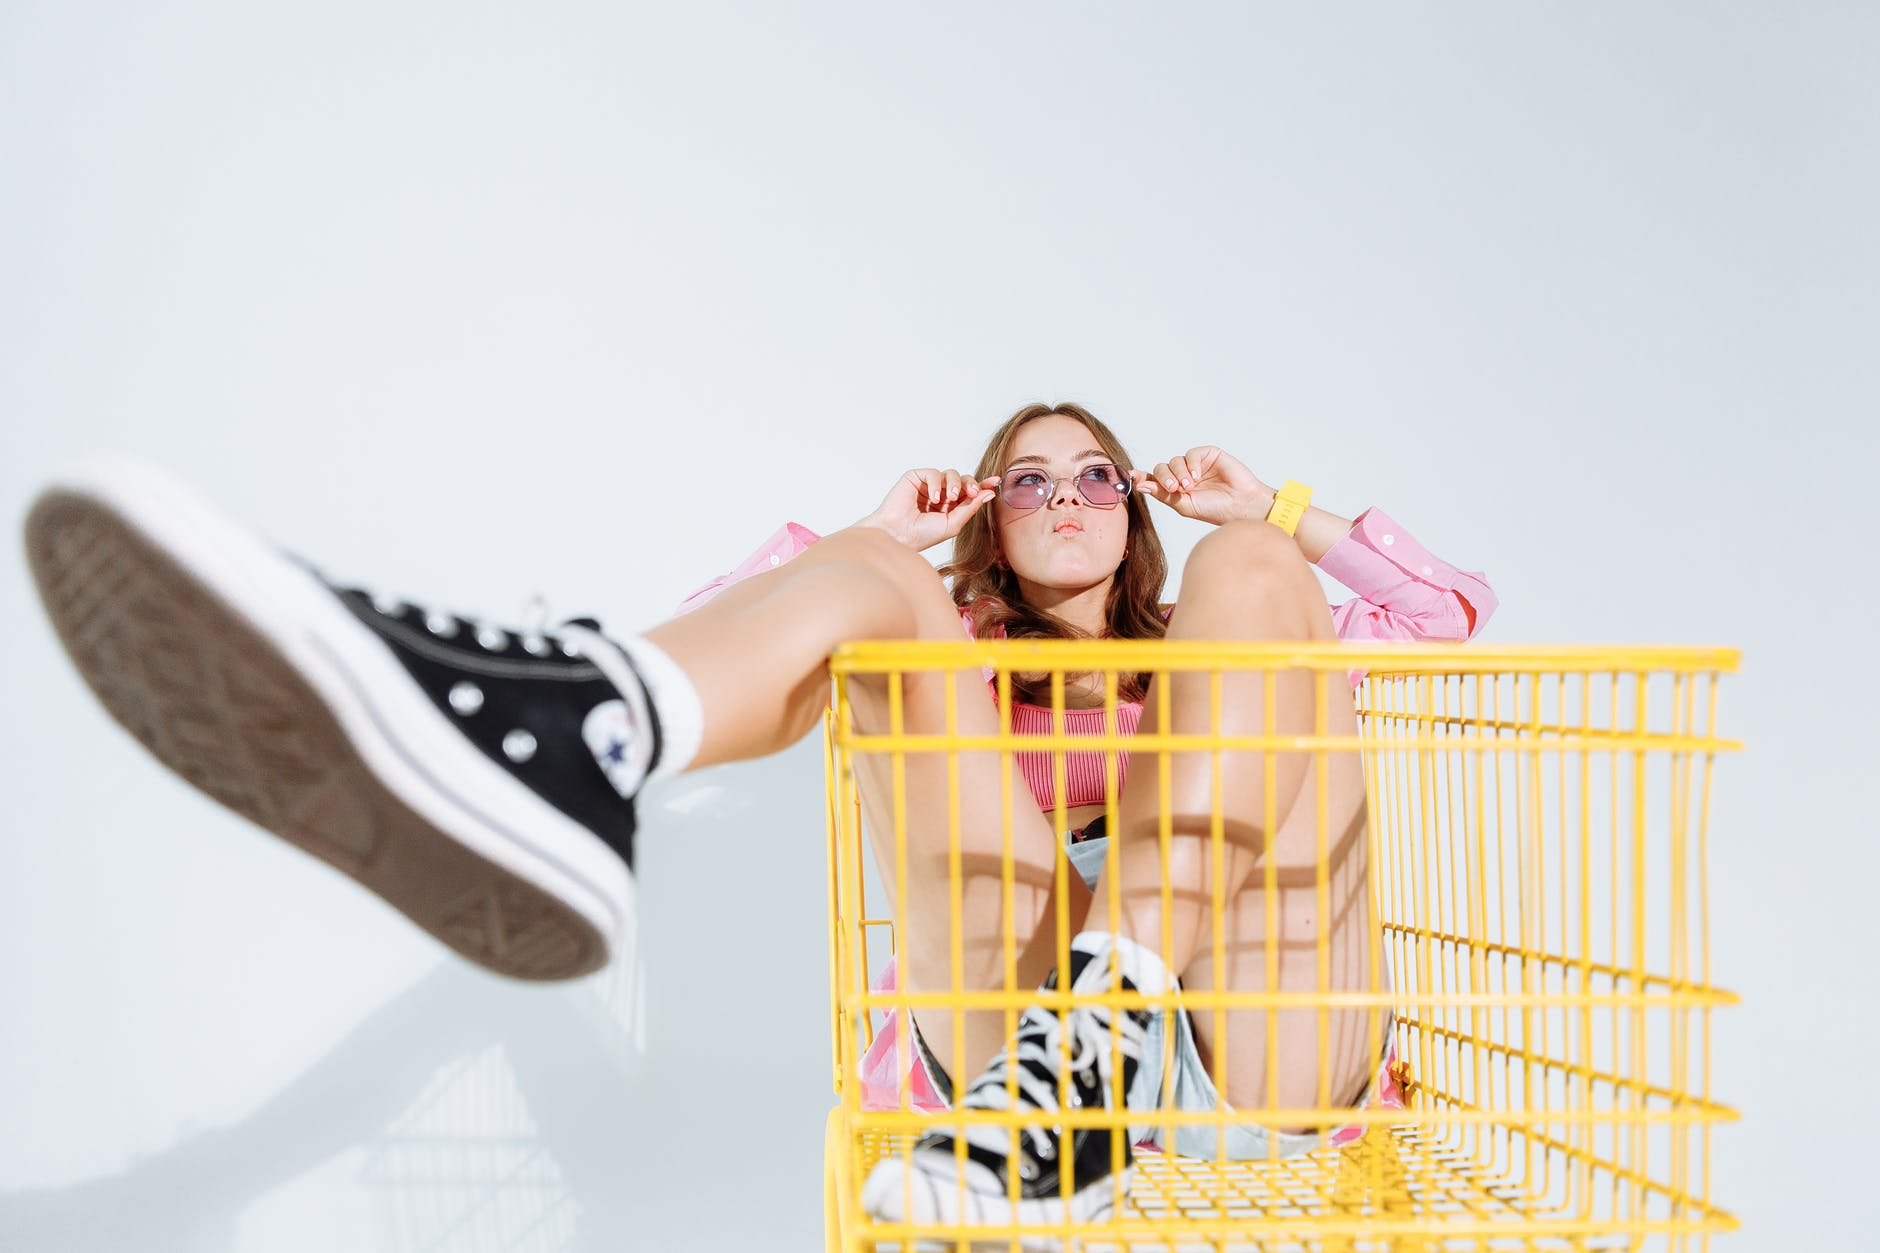 girl in black and white converse all star high top sneakers jumping on yellow shopping cart